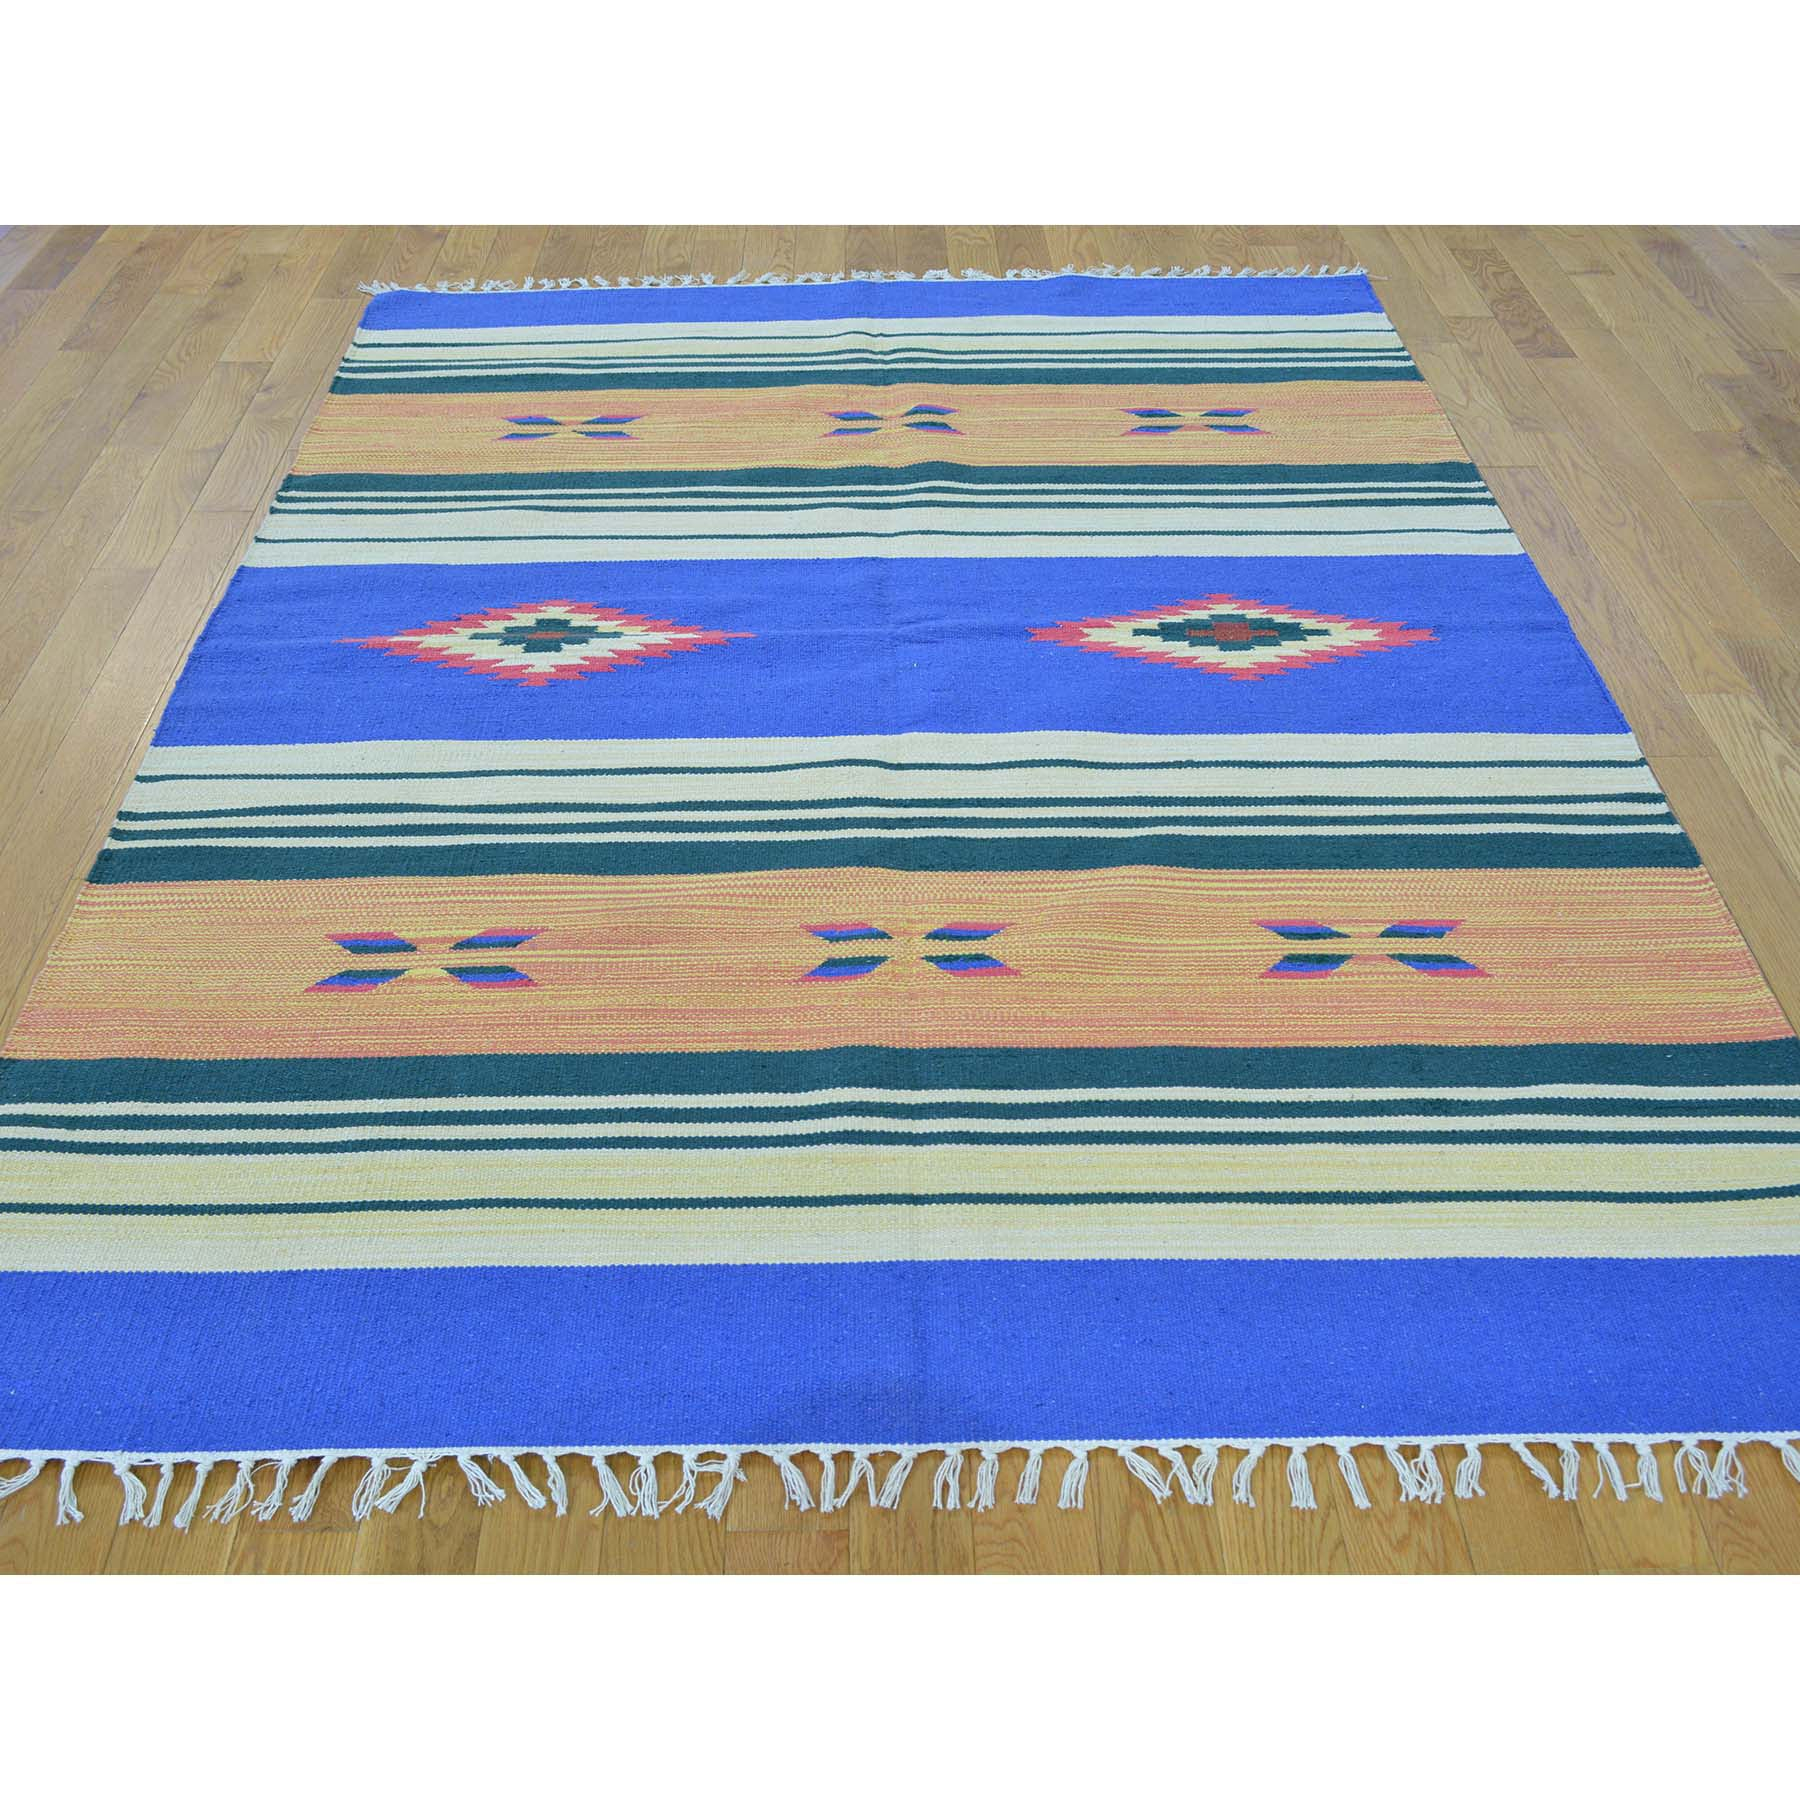 "Handmade Flat Weave Rectangle Rug > Design# SH26129 > Size: 5'-1"" x 7'-0"" [ONLINE ONLY]"